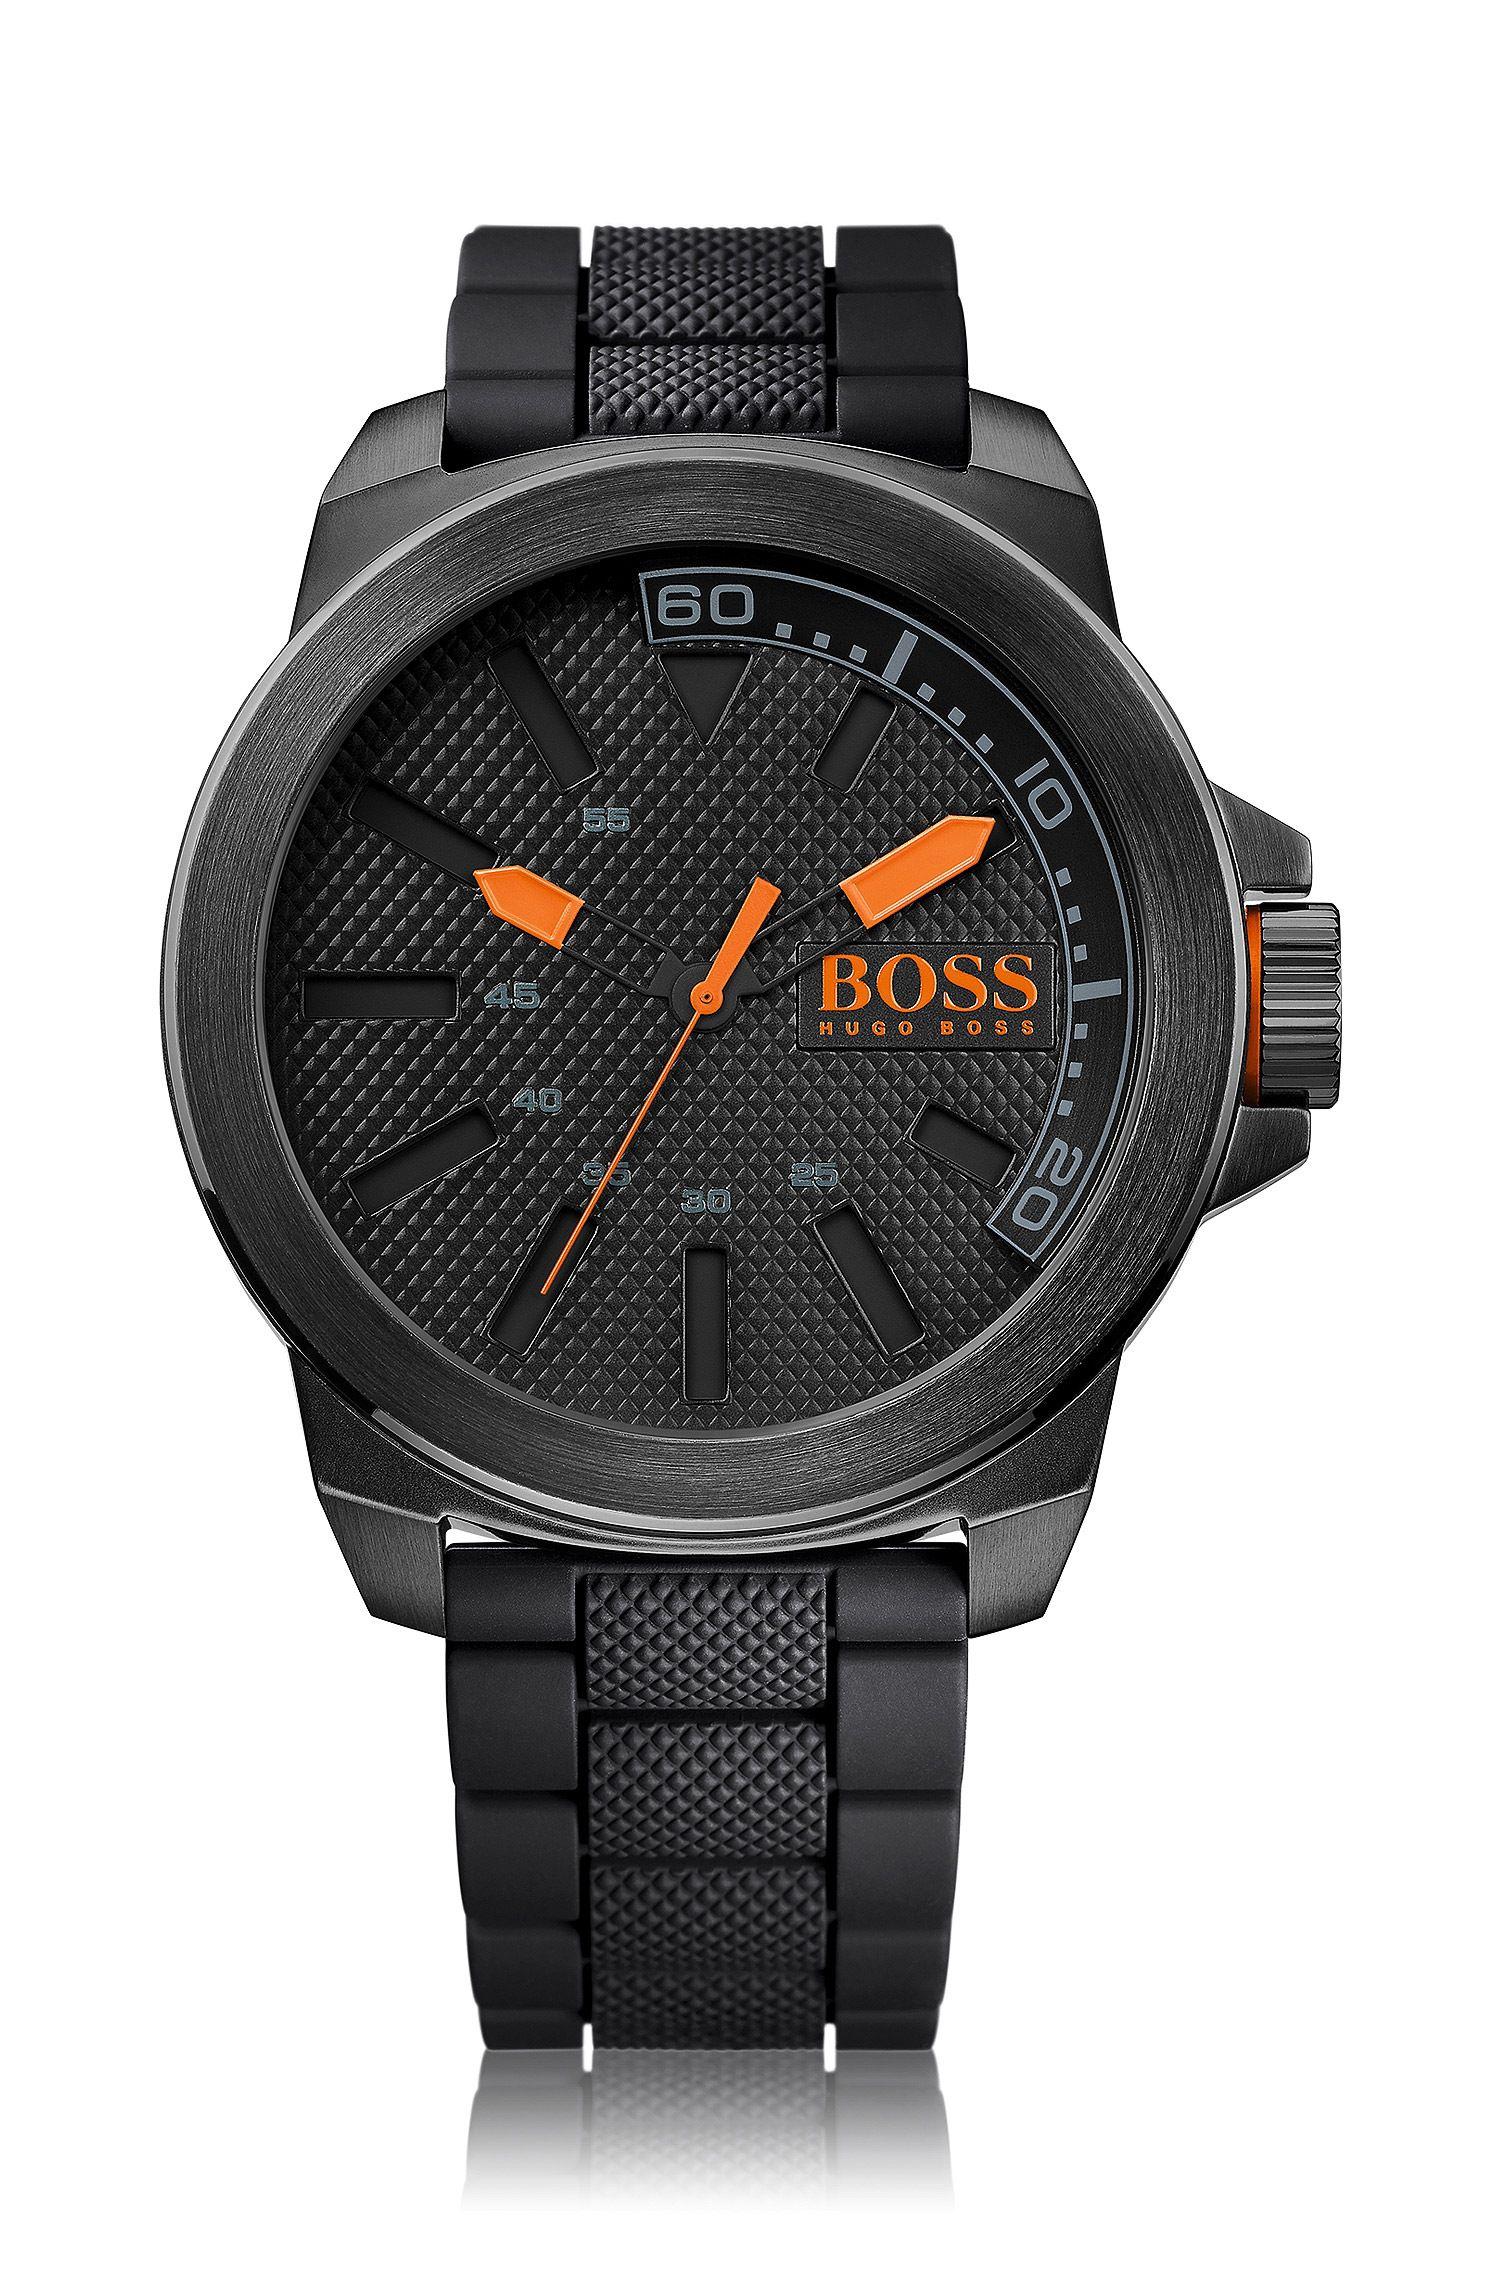 Blackened stainless-steel three-hand watch with textured dial and strap